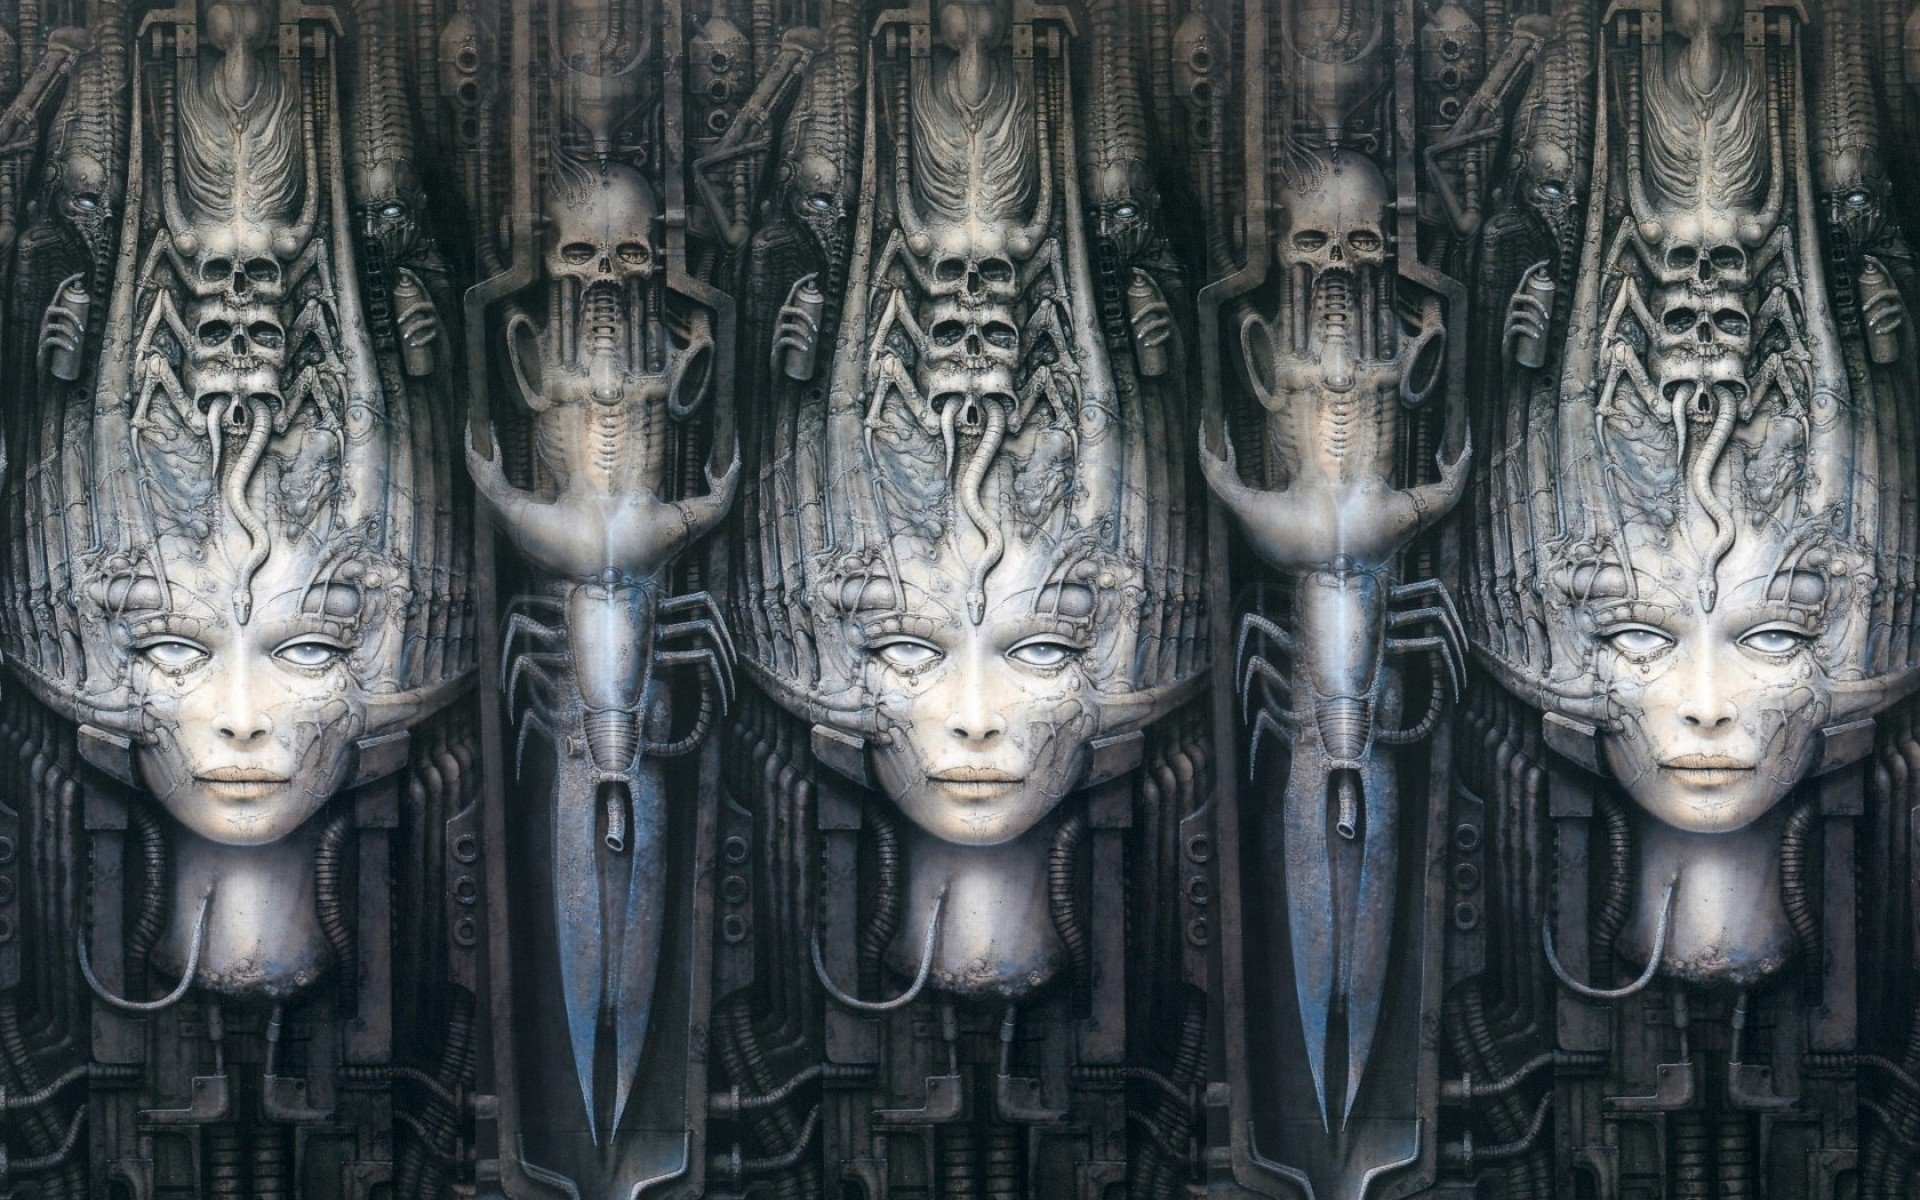 giger wallpaper hr hd - photo #26